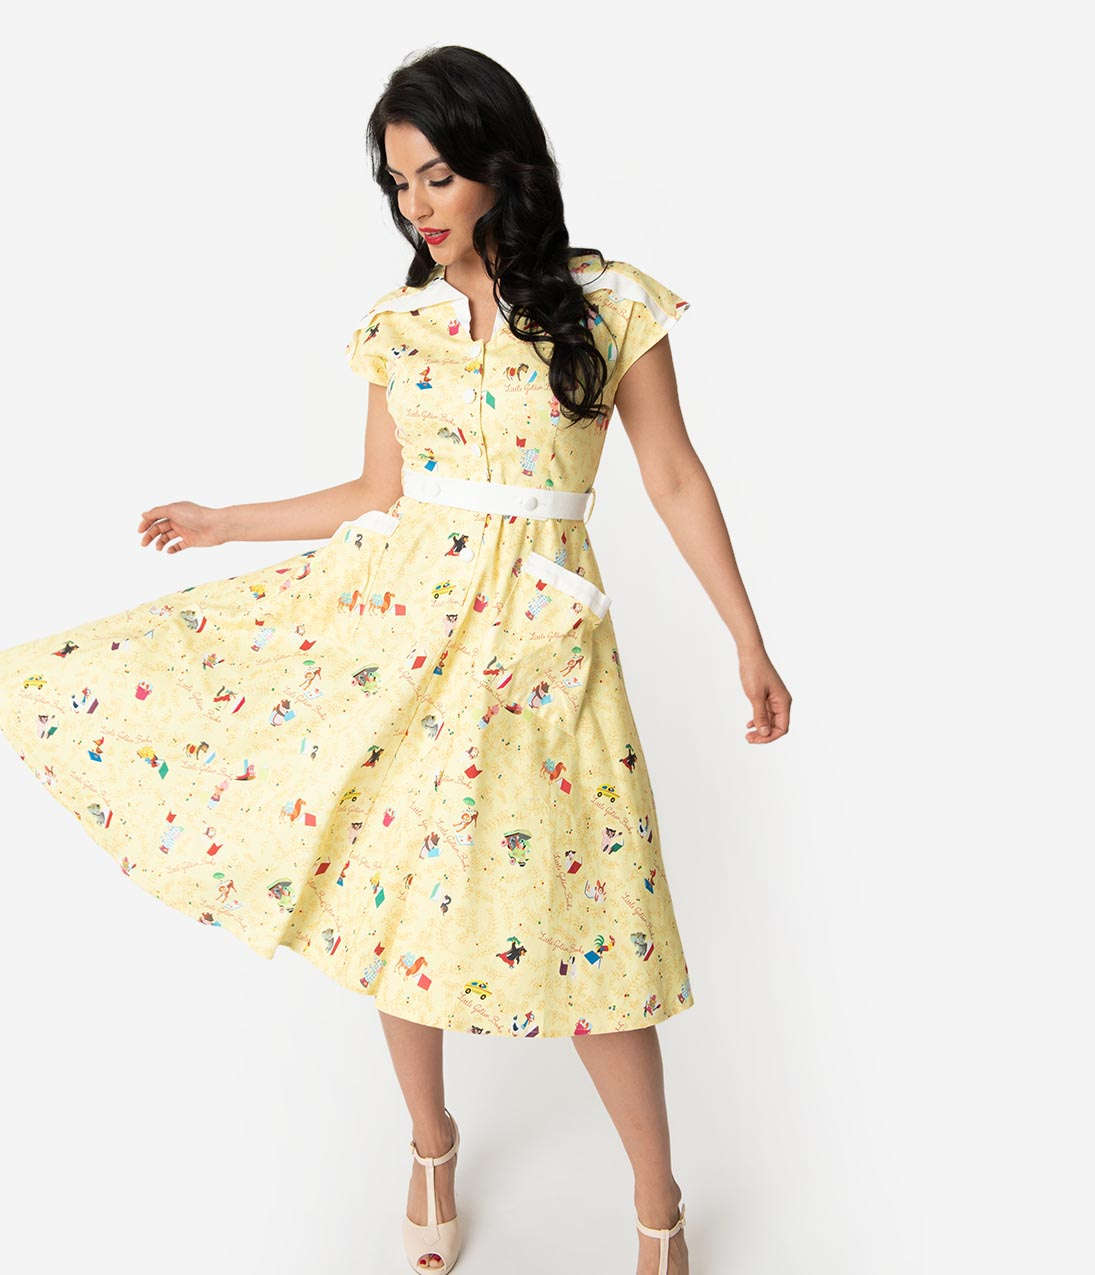 1950s Dresses, 50s Dresses | 1950s Style Dresses Little Golden Books X Unique Vintage Yellow Print Hedda Swing Dress $148.00 AT vintagedancer.com